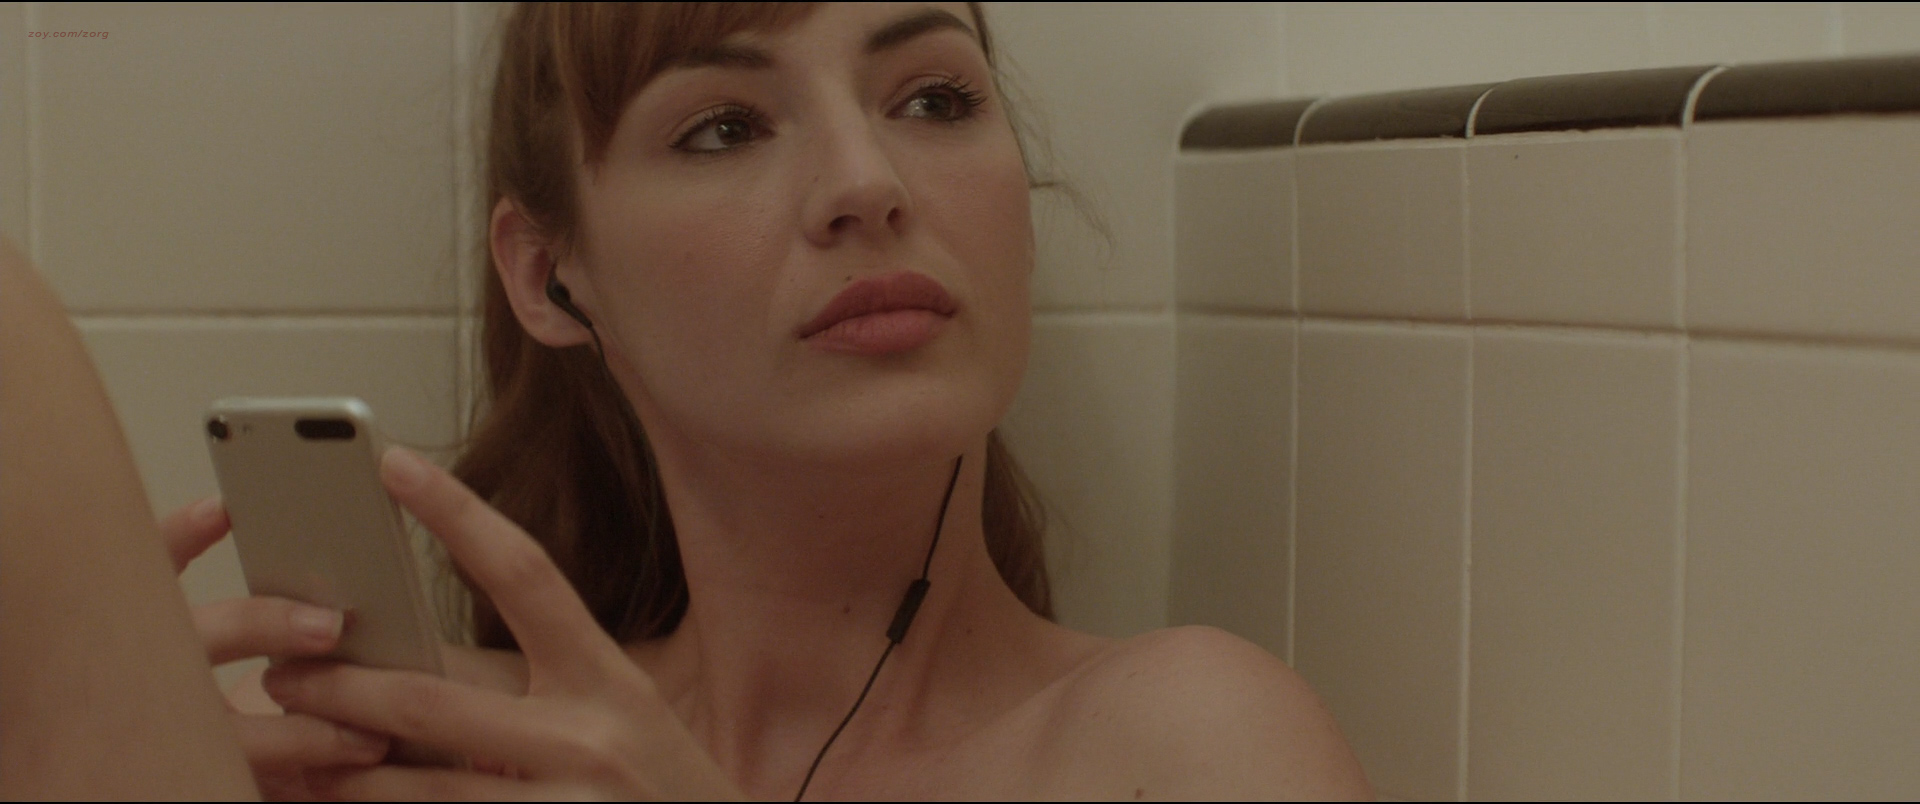 Louise Bourgoin nude nipple and hot in thong - Mojave (2015) HD 1080p BluRay (6)